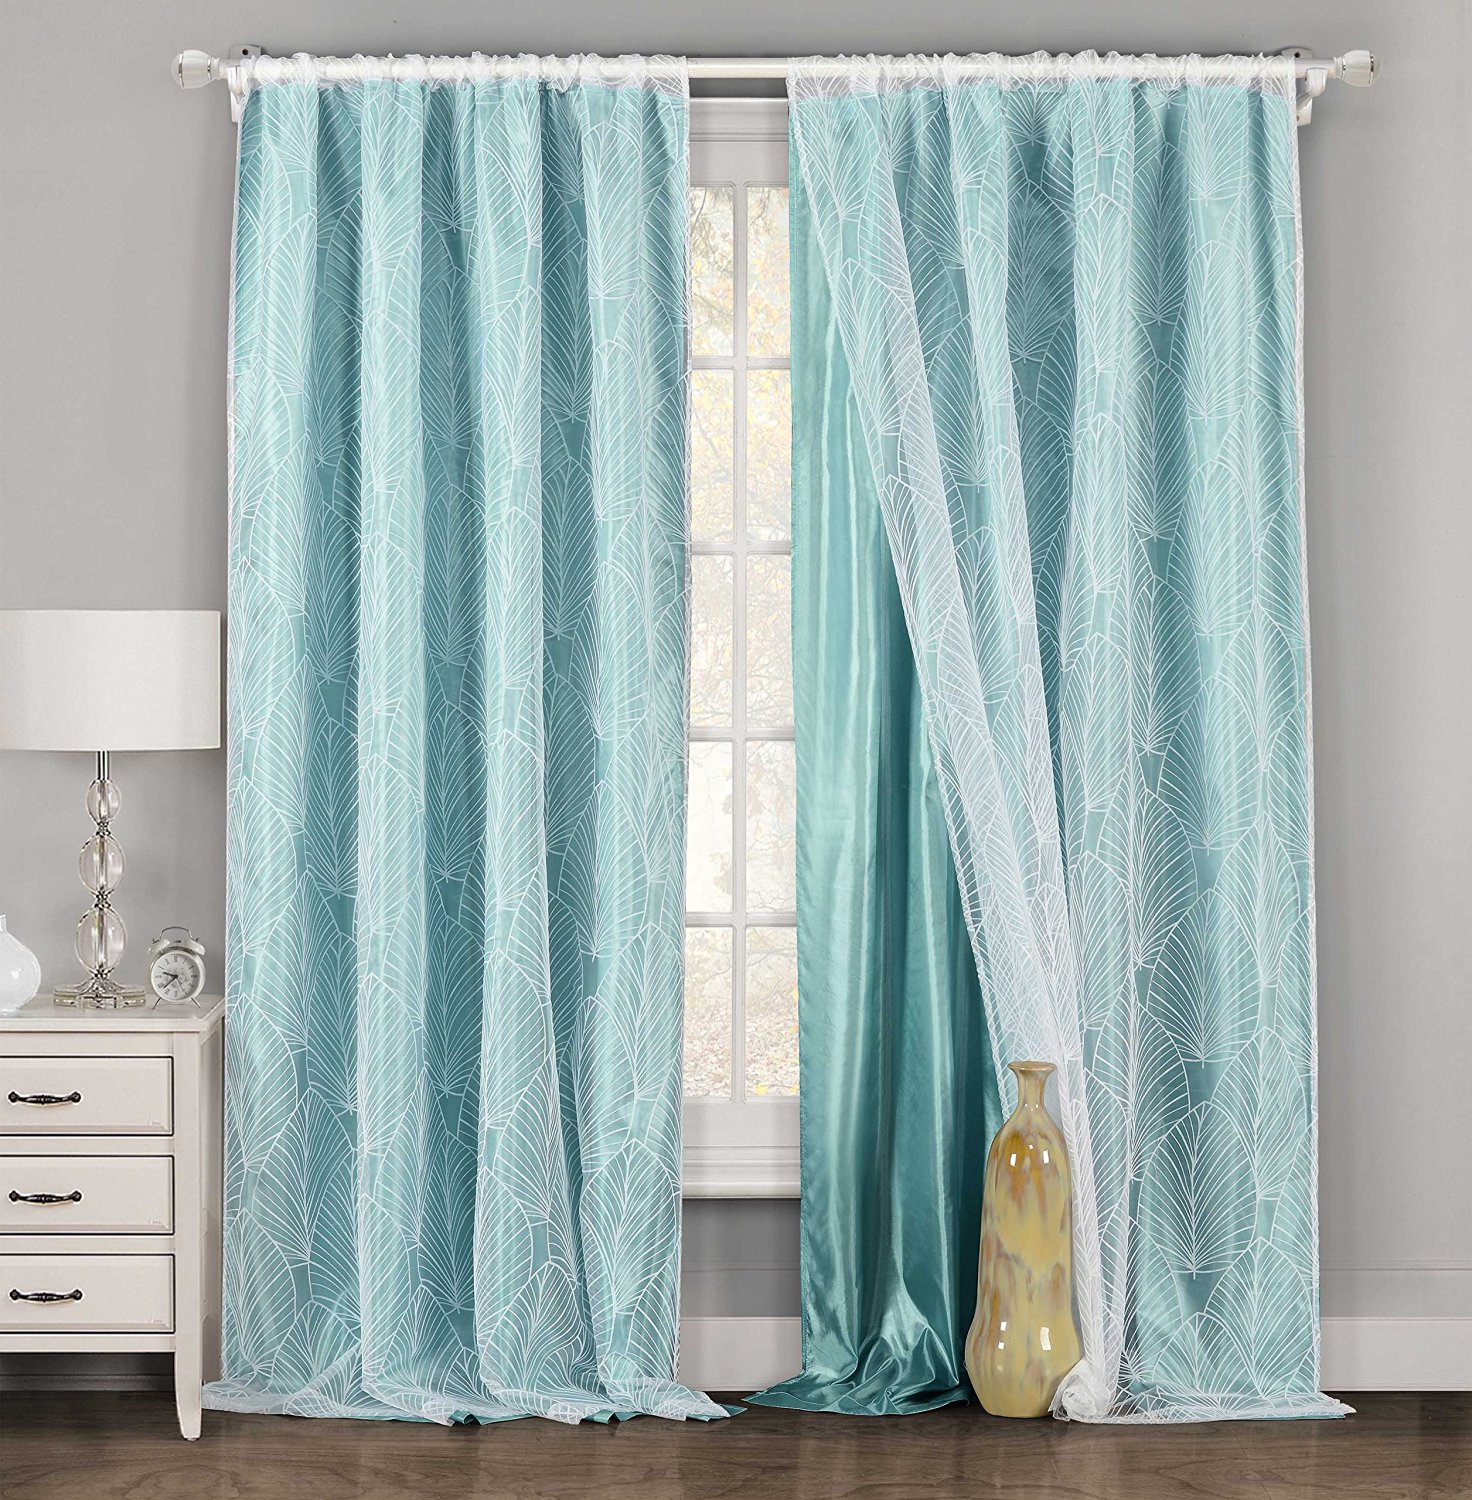 shop e slide crushed qlt zoom curtain urban curtains outfitters constrain velvet view window redesign hei fit teal